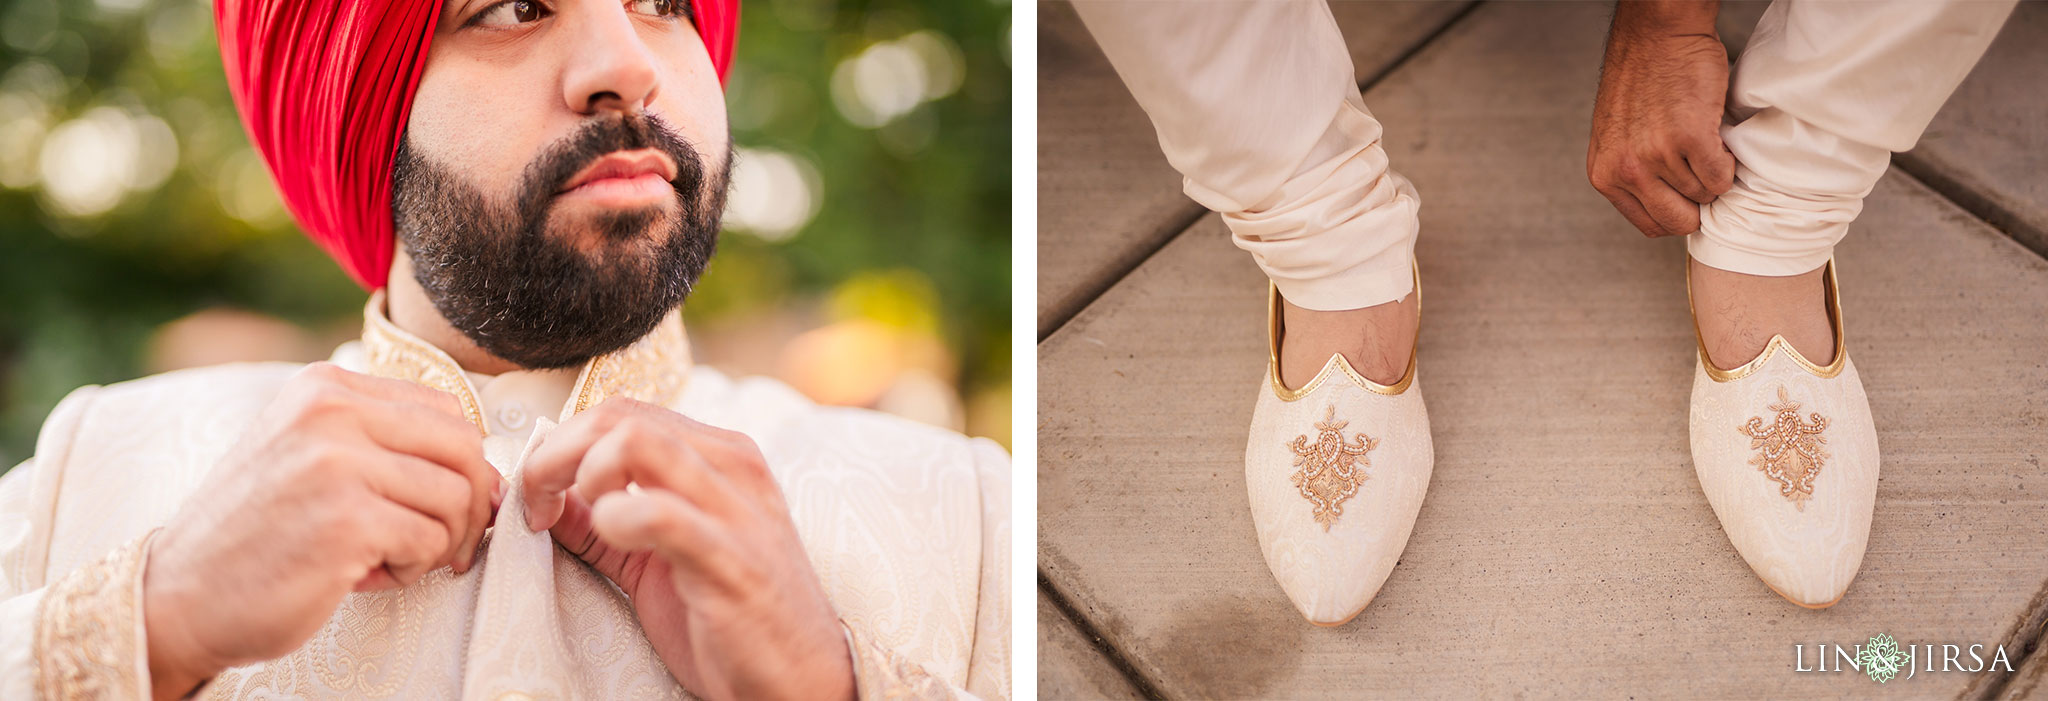 014 san francisco sikh center punjabi wedding photography